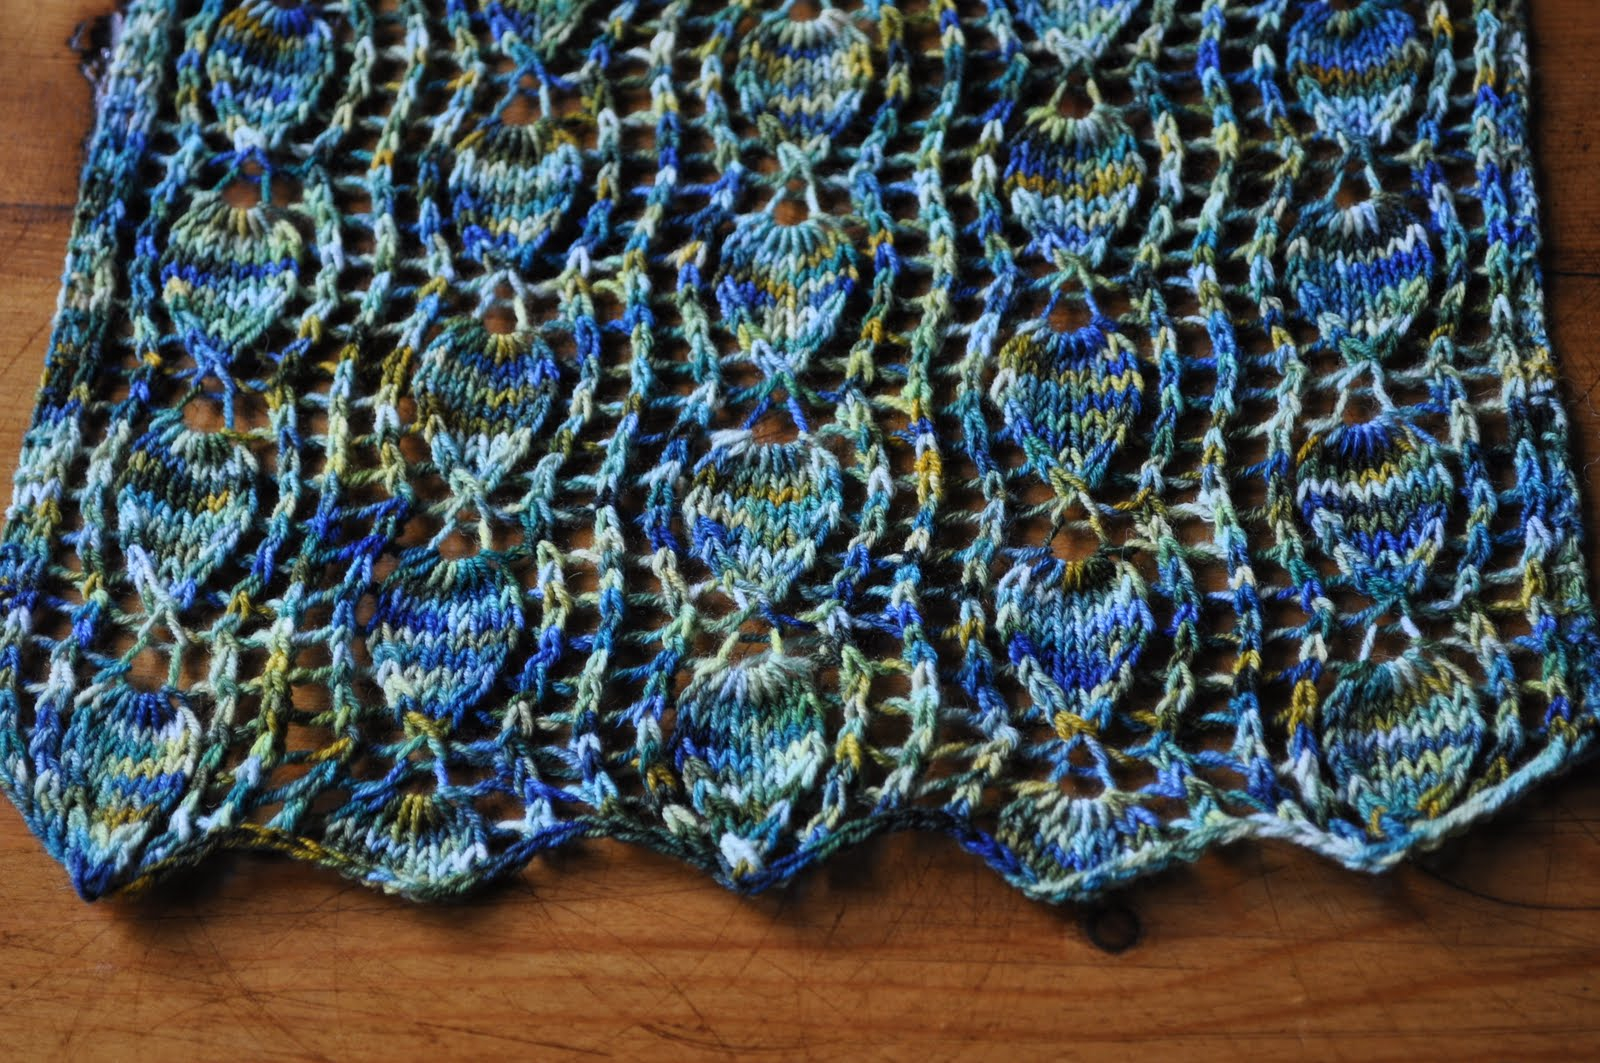 Variegated Yarn Patterns Knitting Knitting Linguist The Year Of The Magpie Lace And Ramping Up